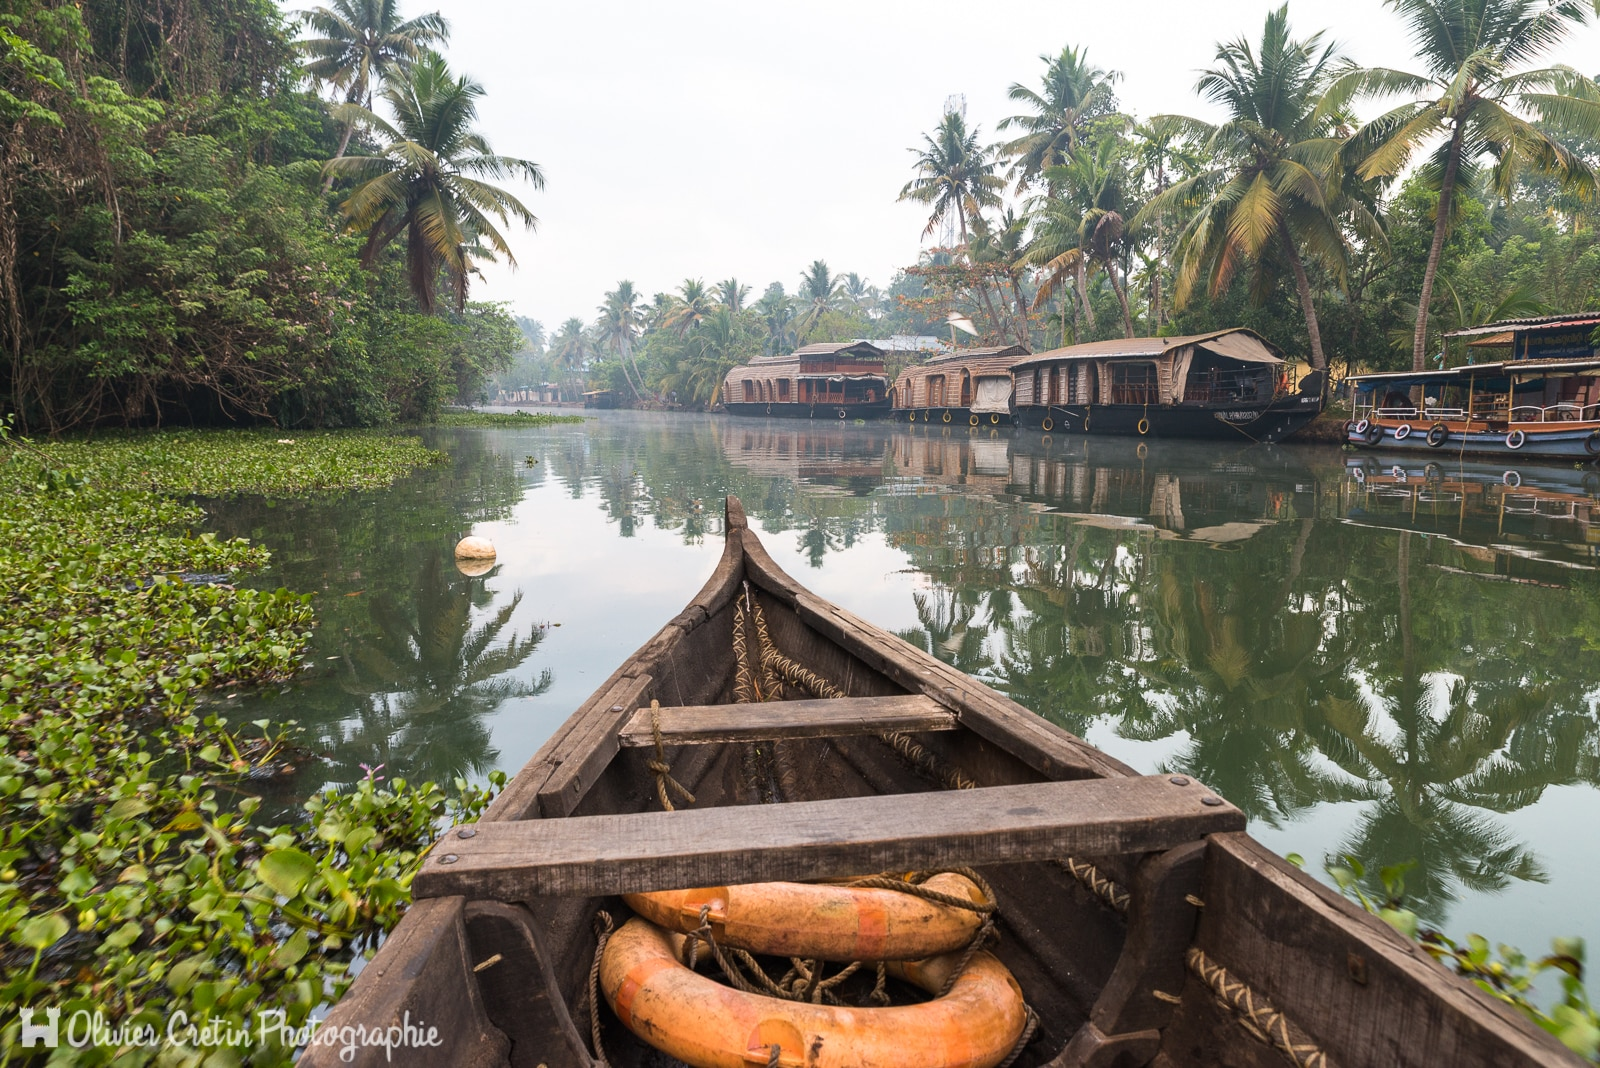 Inde - Kumarakom - Balade en pirogue sur les backwaters